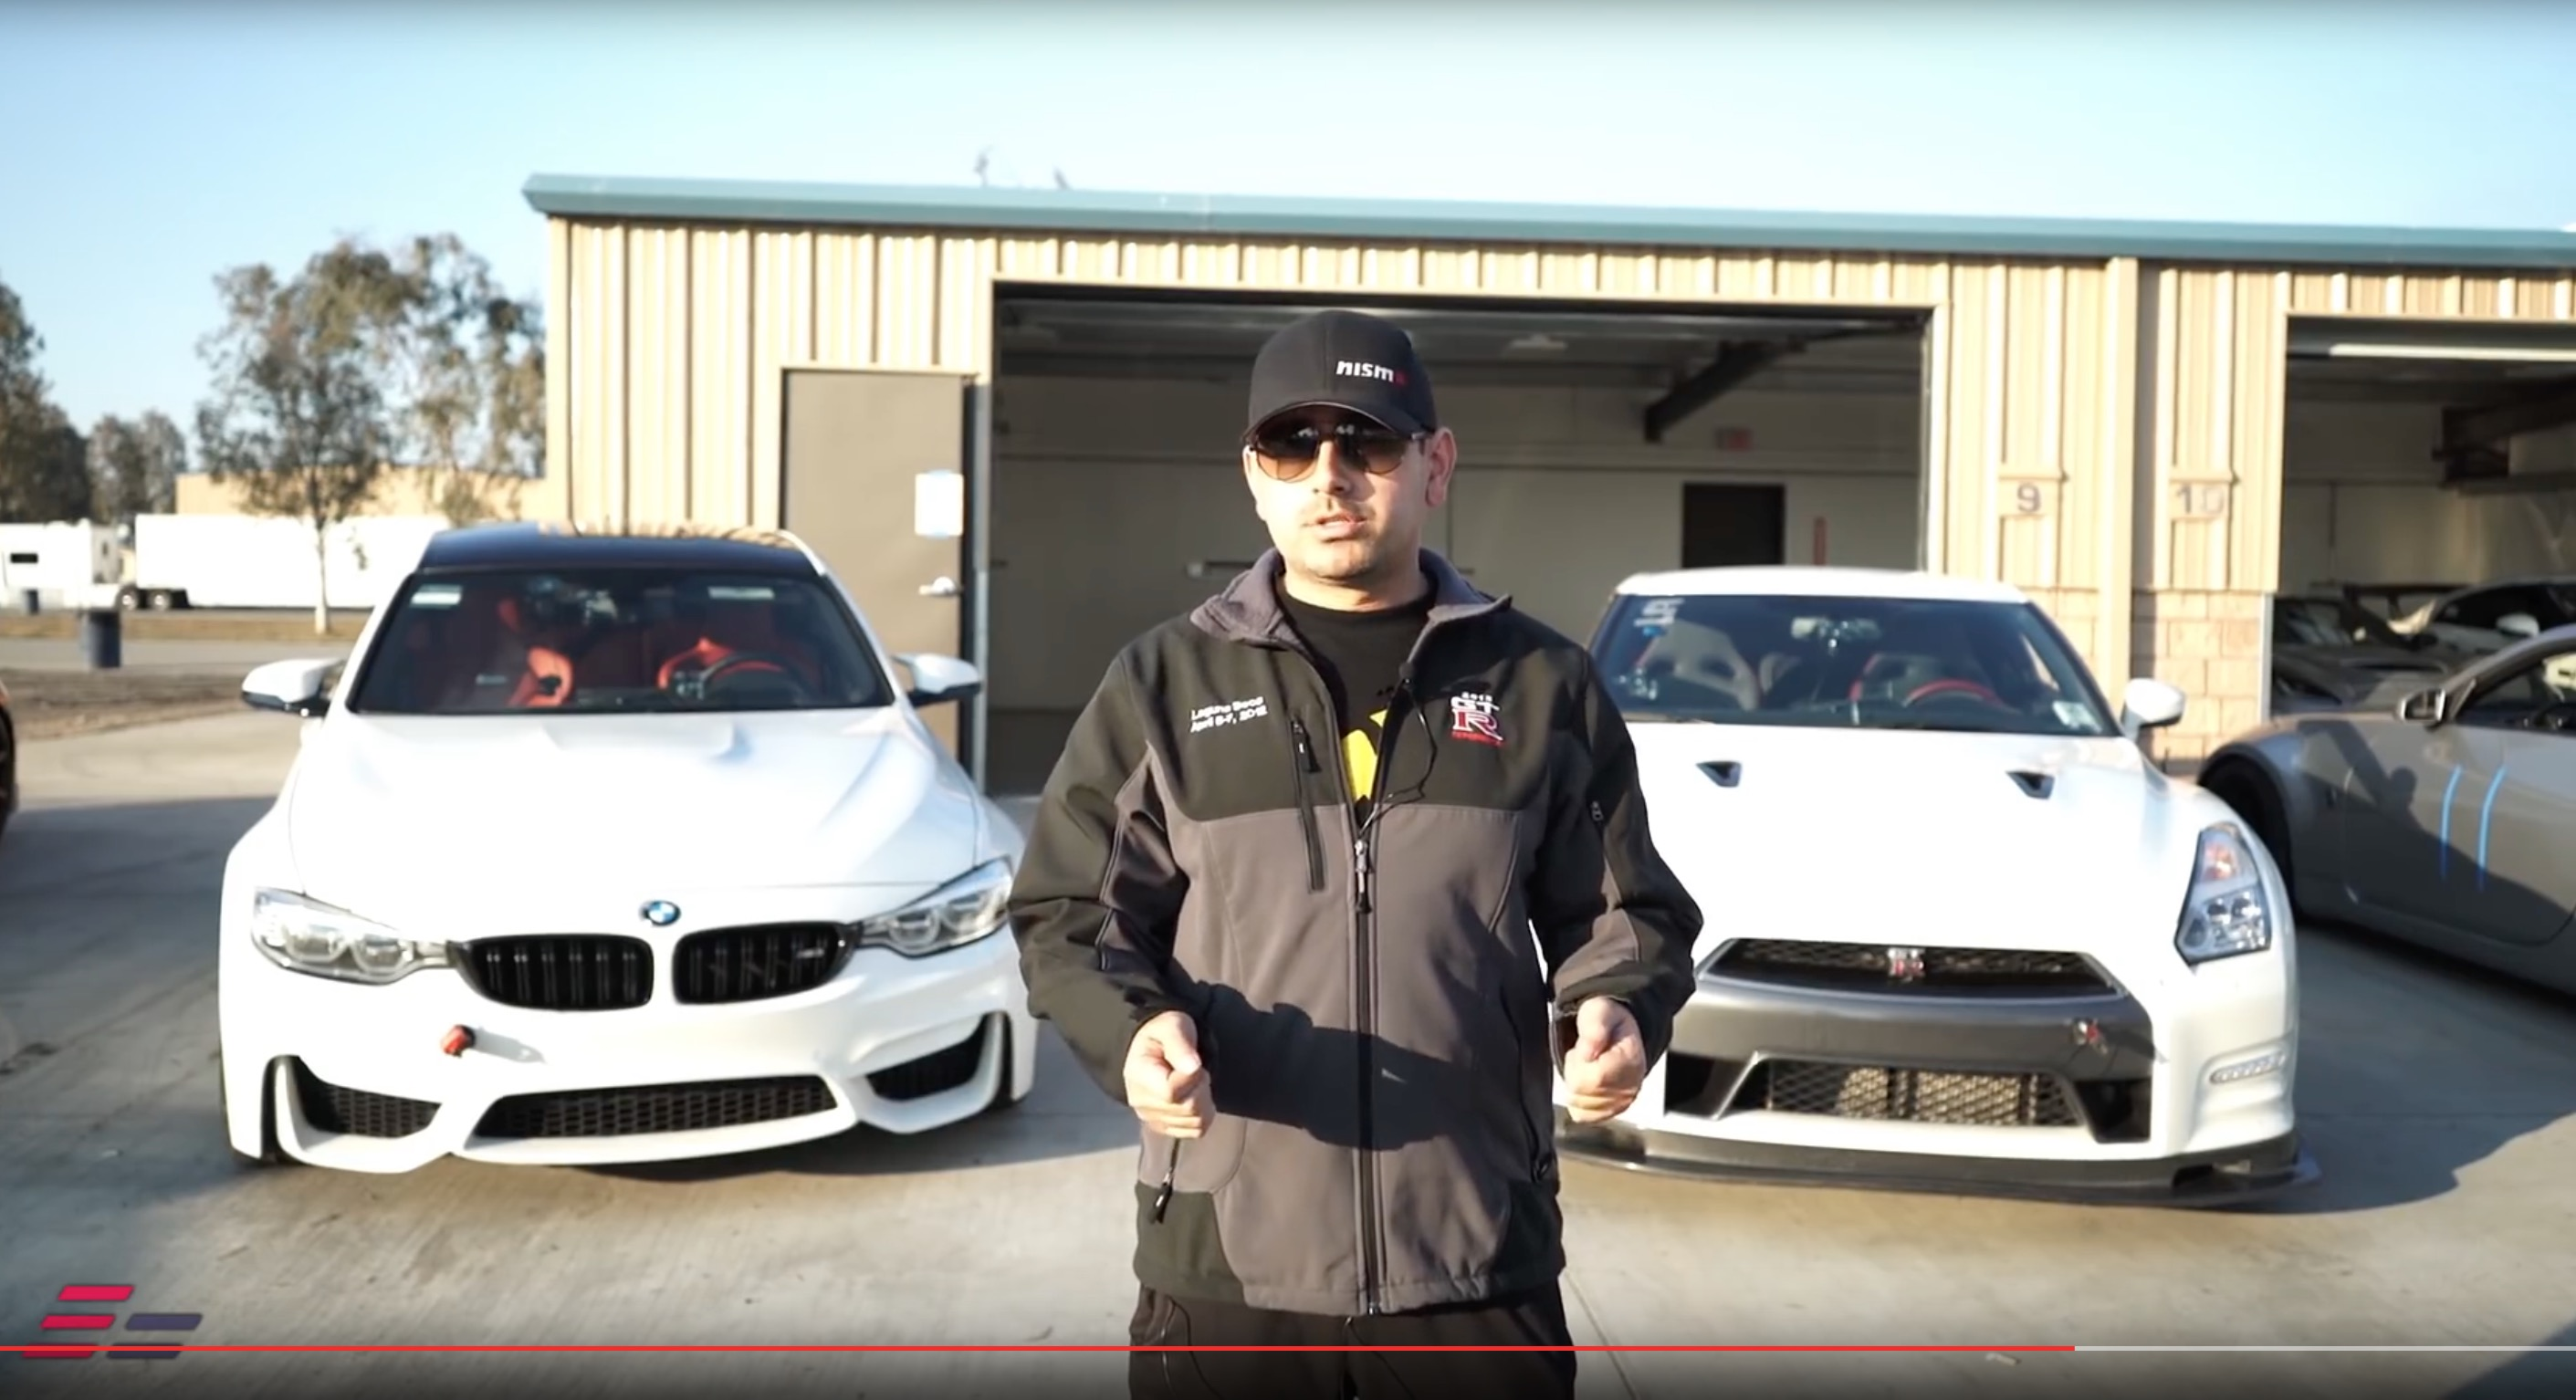 F80 M3 VS Nissan GTR Track parison Video at Buttonwillow